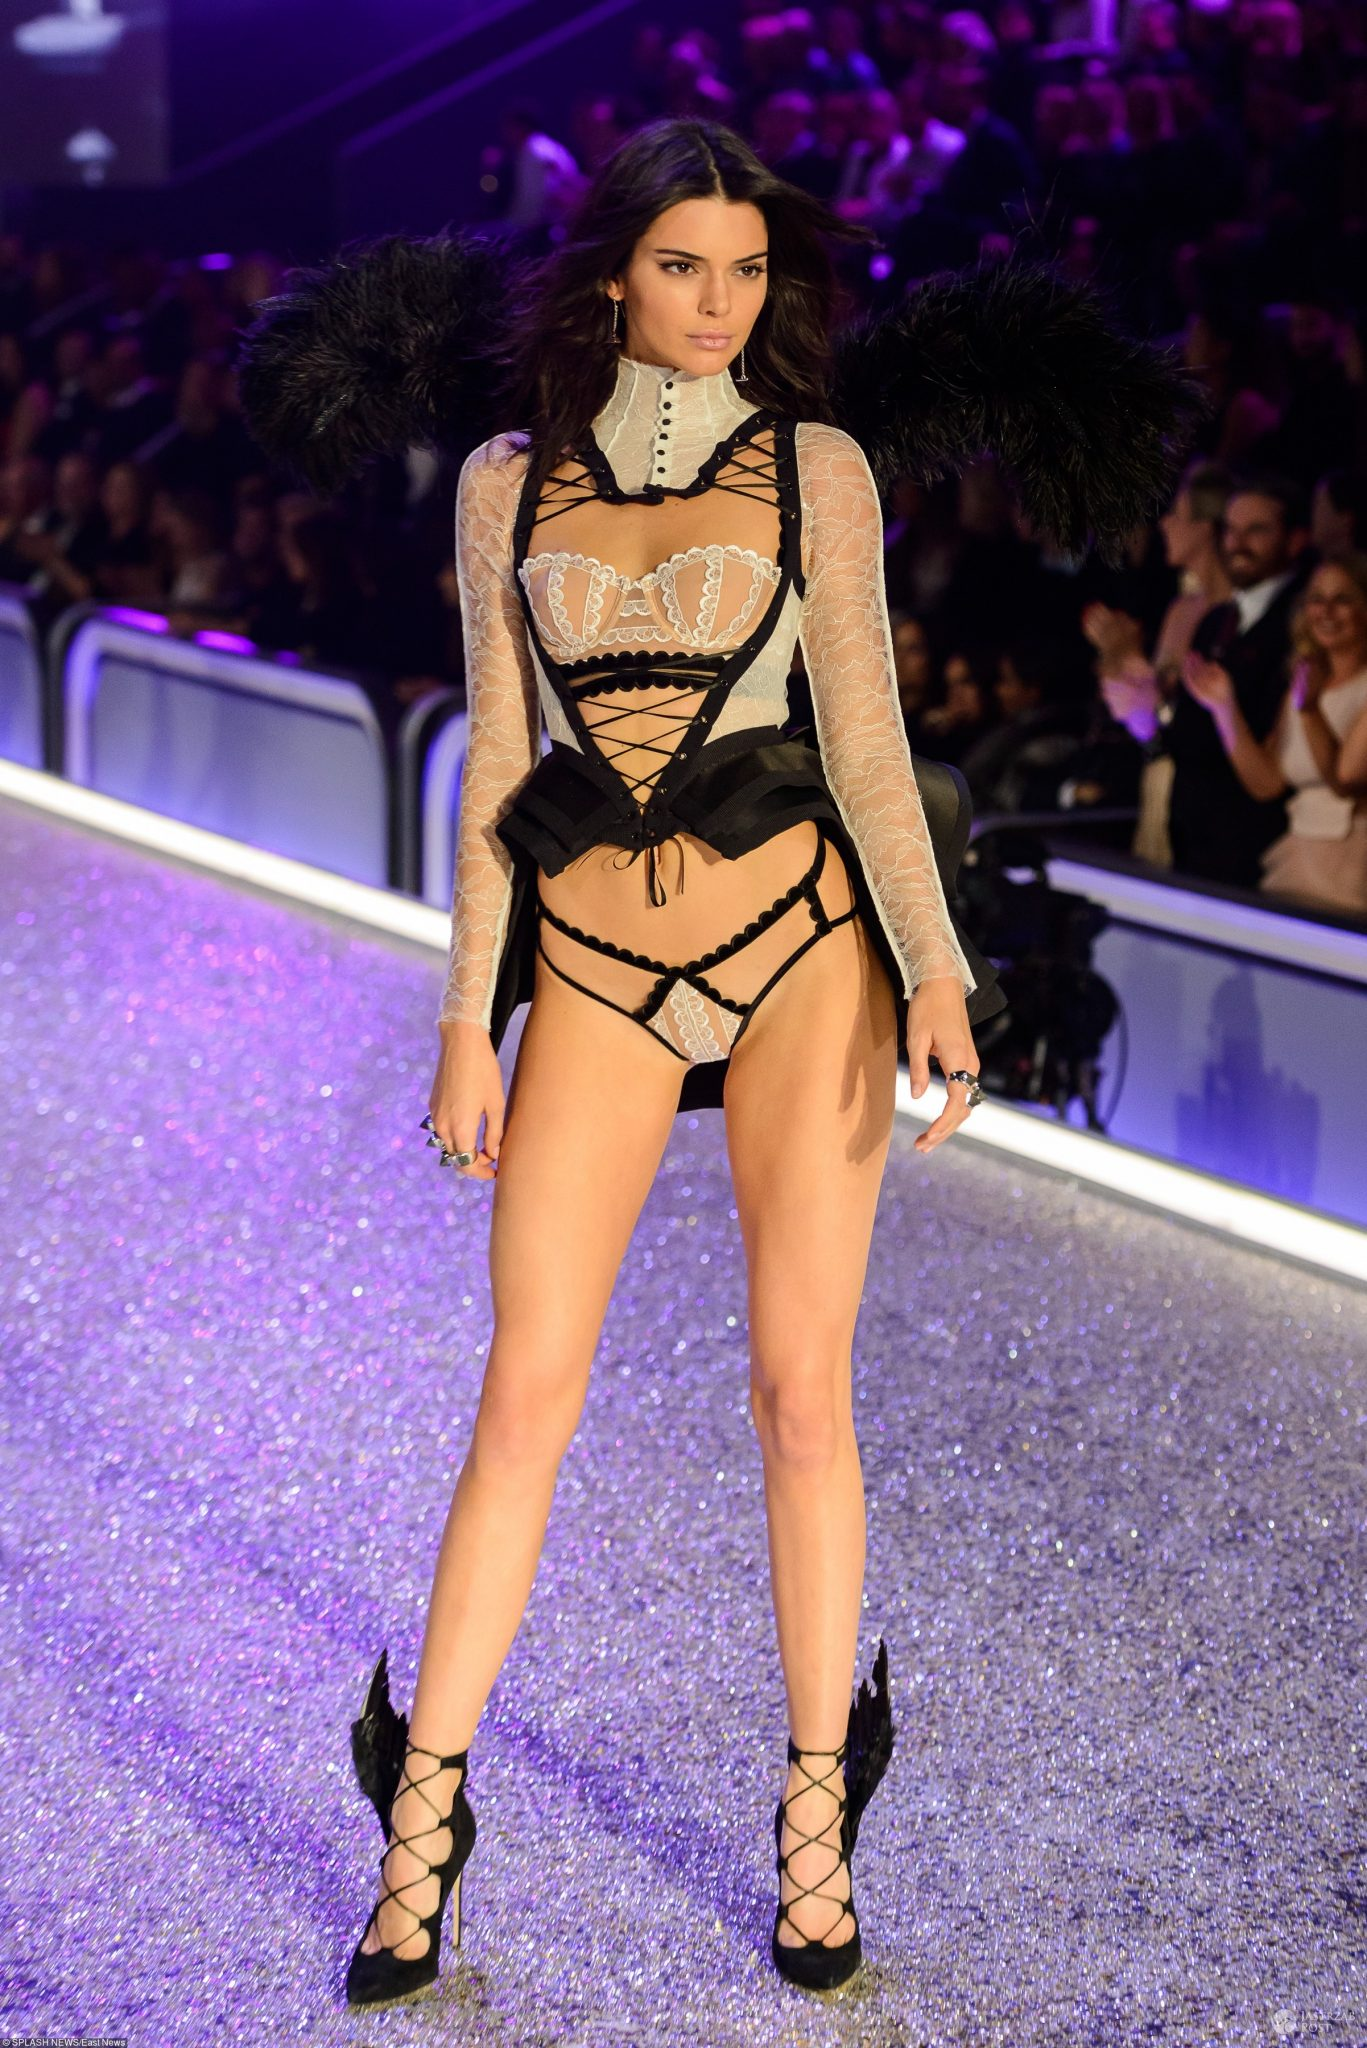 Supermodels on the runway for 2016 Victoria's Secret Fashion Show at the Grand Palais in Paris France  Pictured: Kendall Jenner